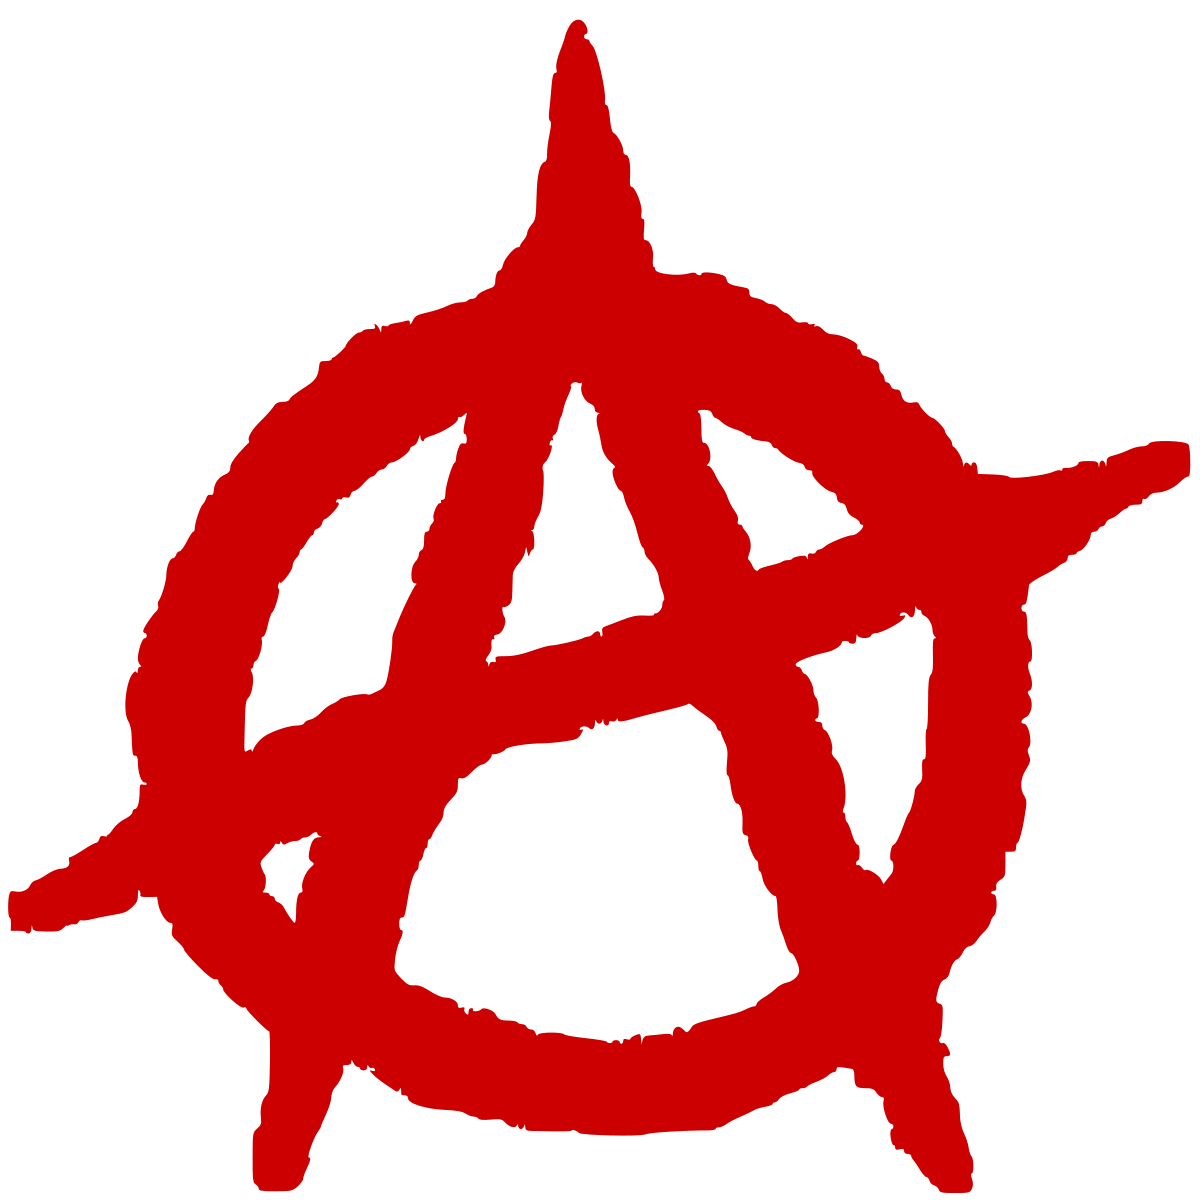 1200px-Circle-A_red_svg.png.8a867c8041dabcca965deac8a7a4ad0a.png